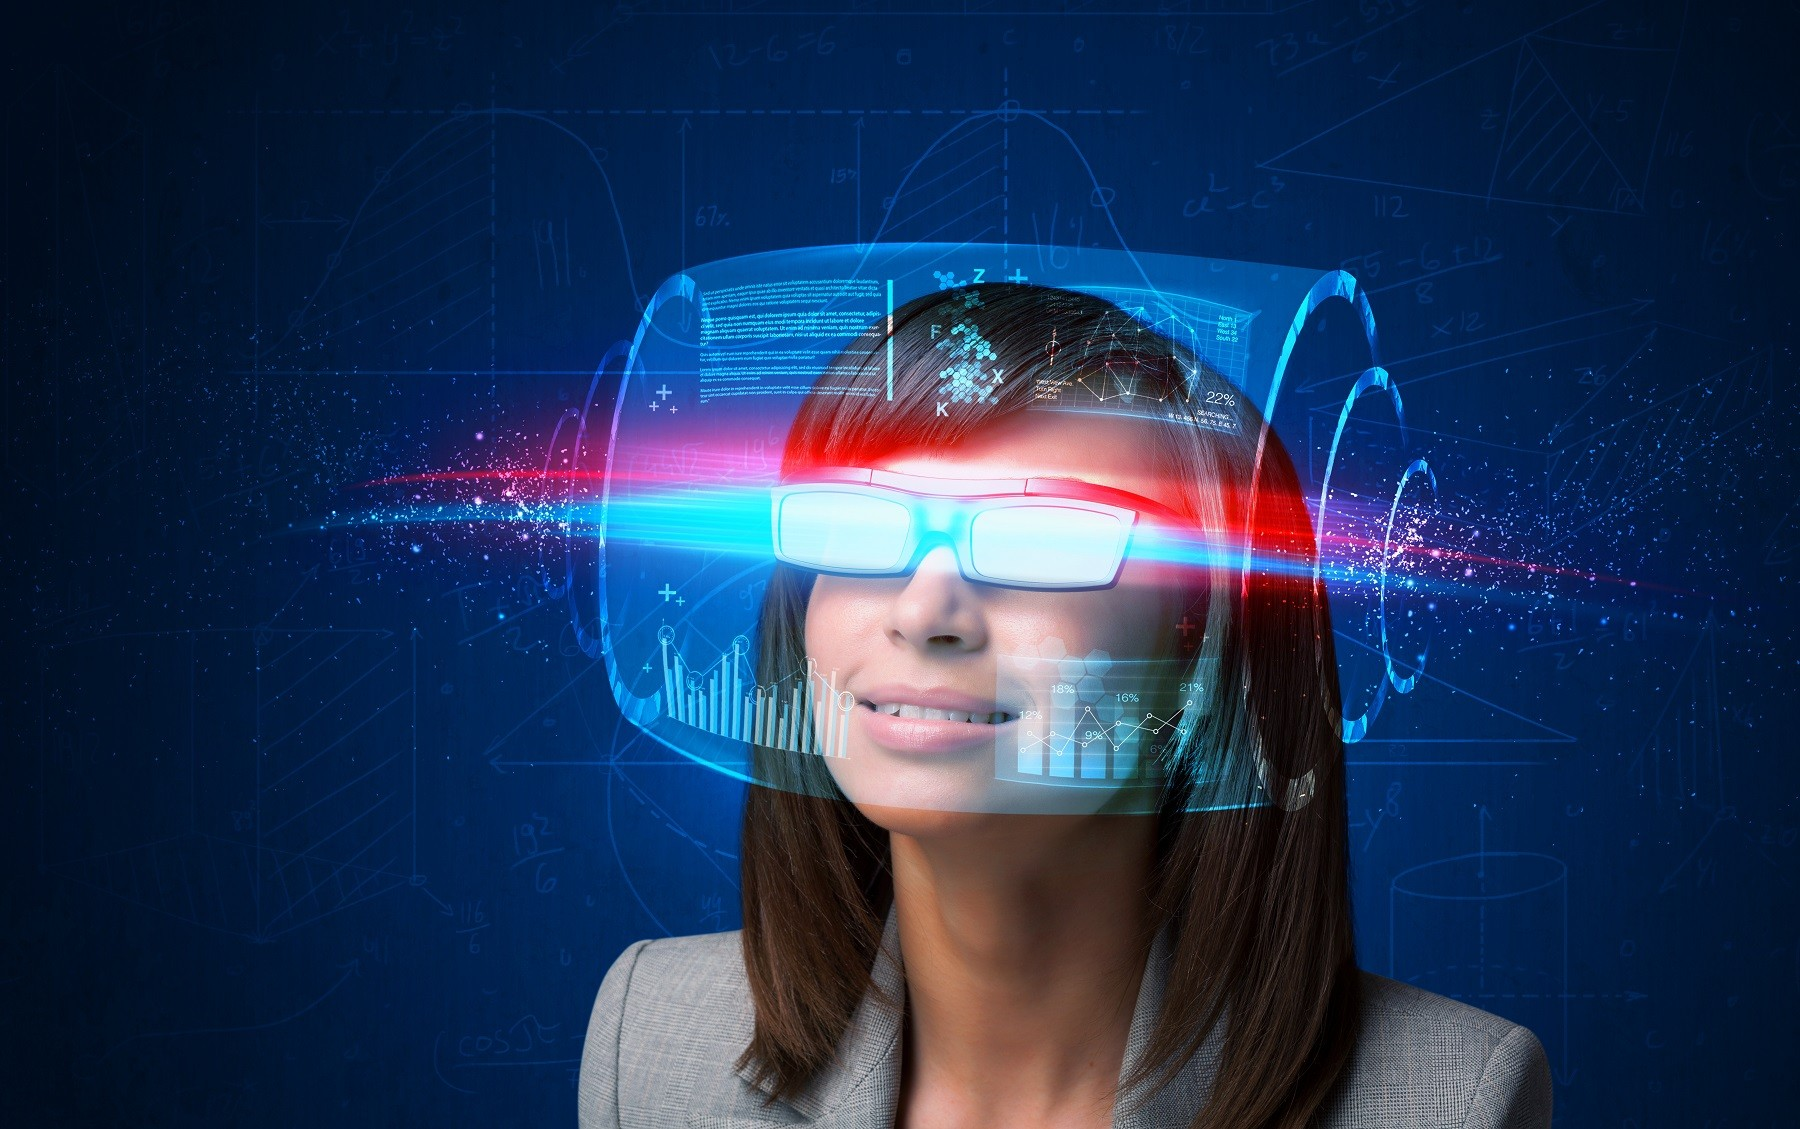 Home Design 3d 9apps Part - 30: Home Design 3d 9apps - New Study Suggests Wearables Are The Next Frontier  For Enterprise